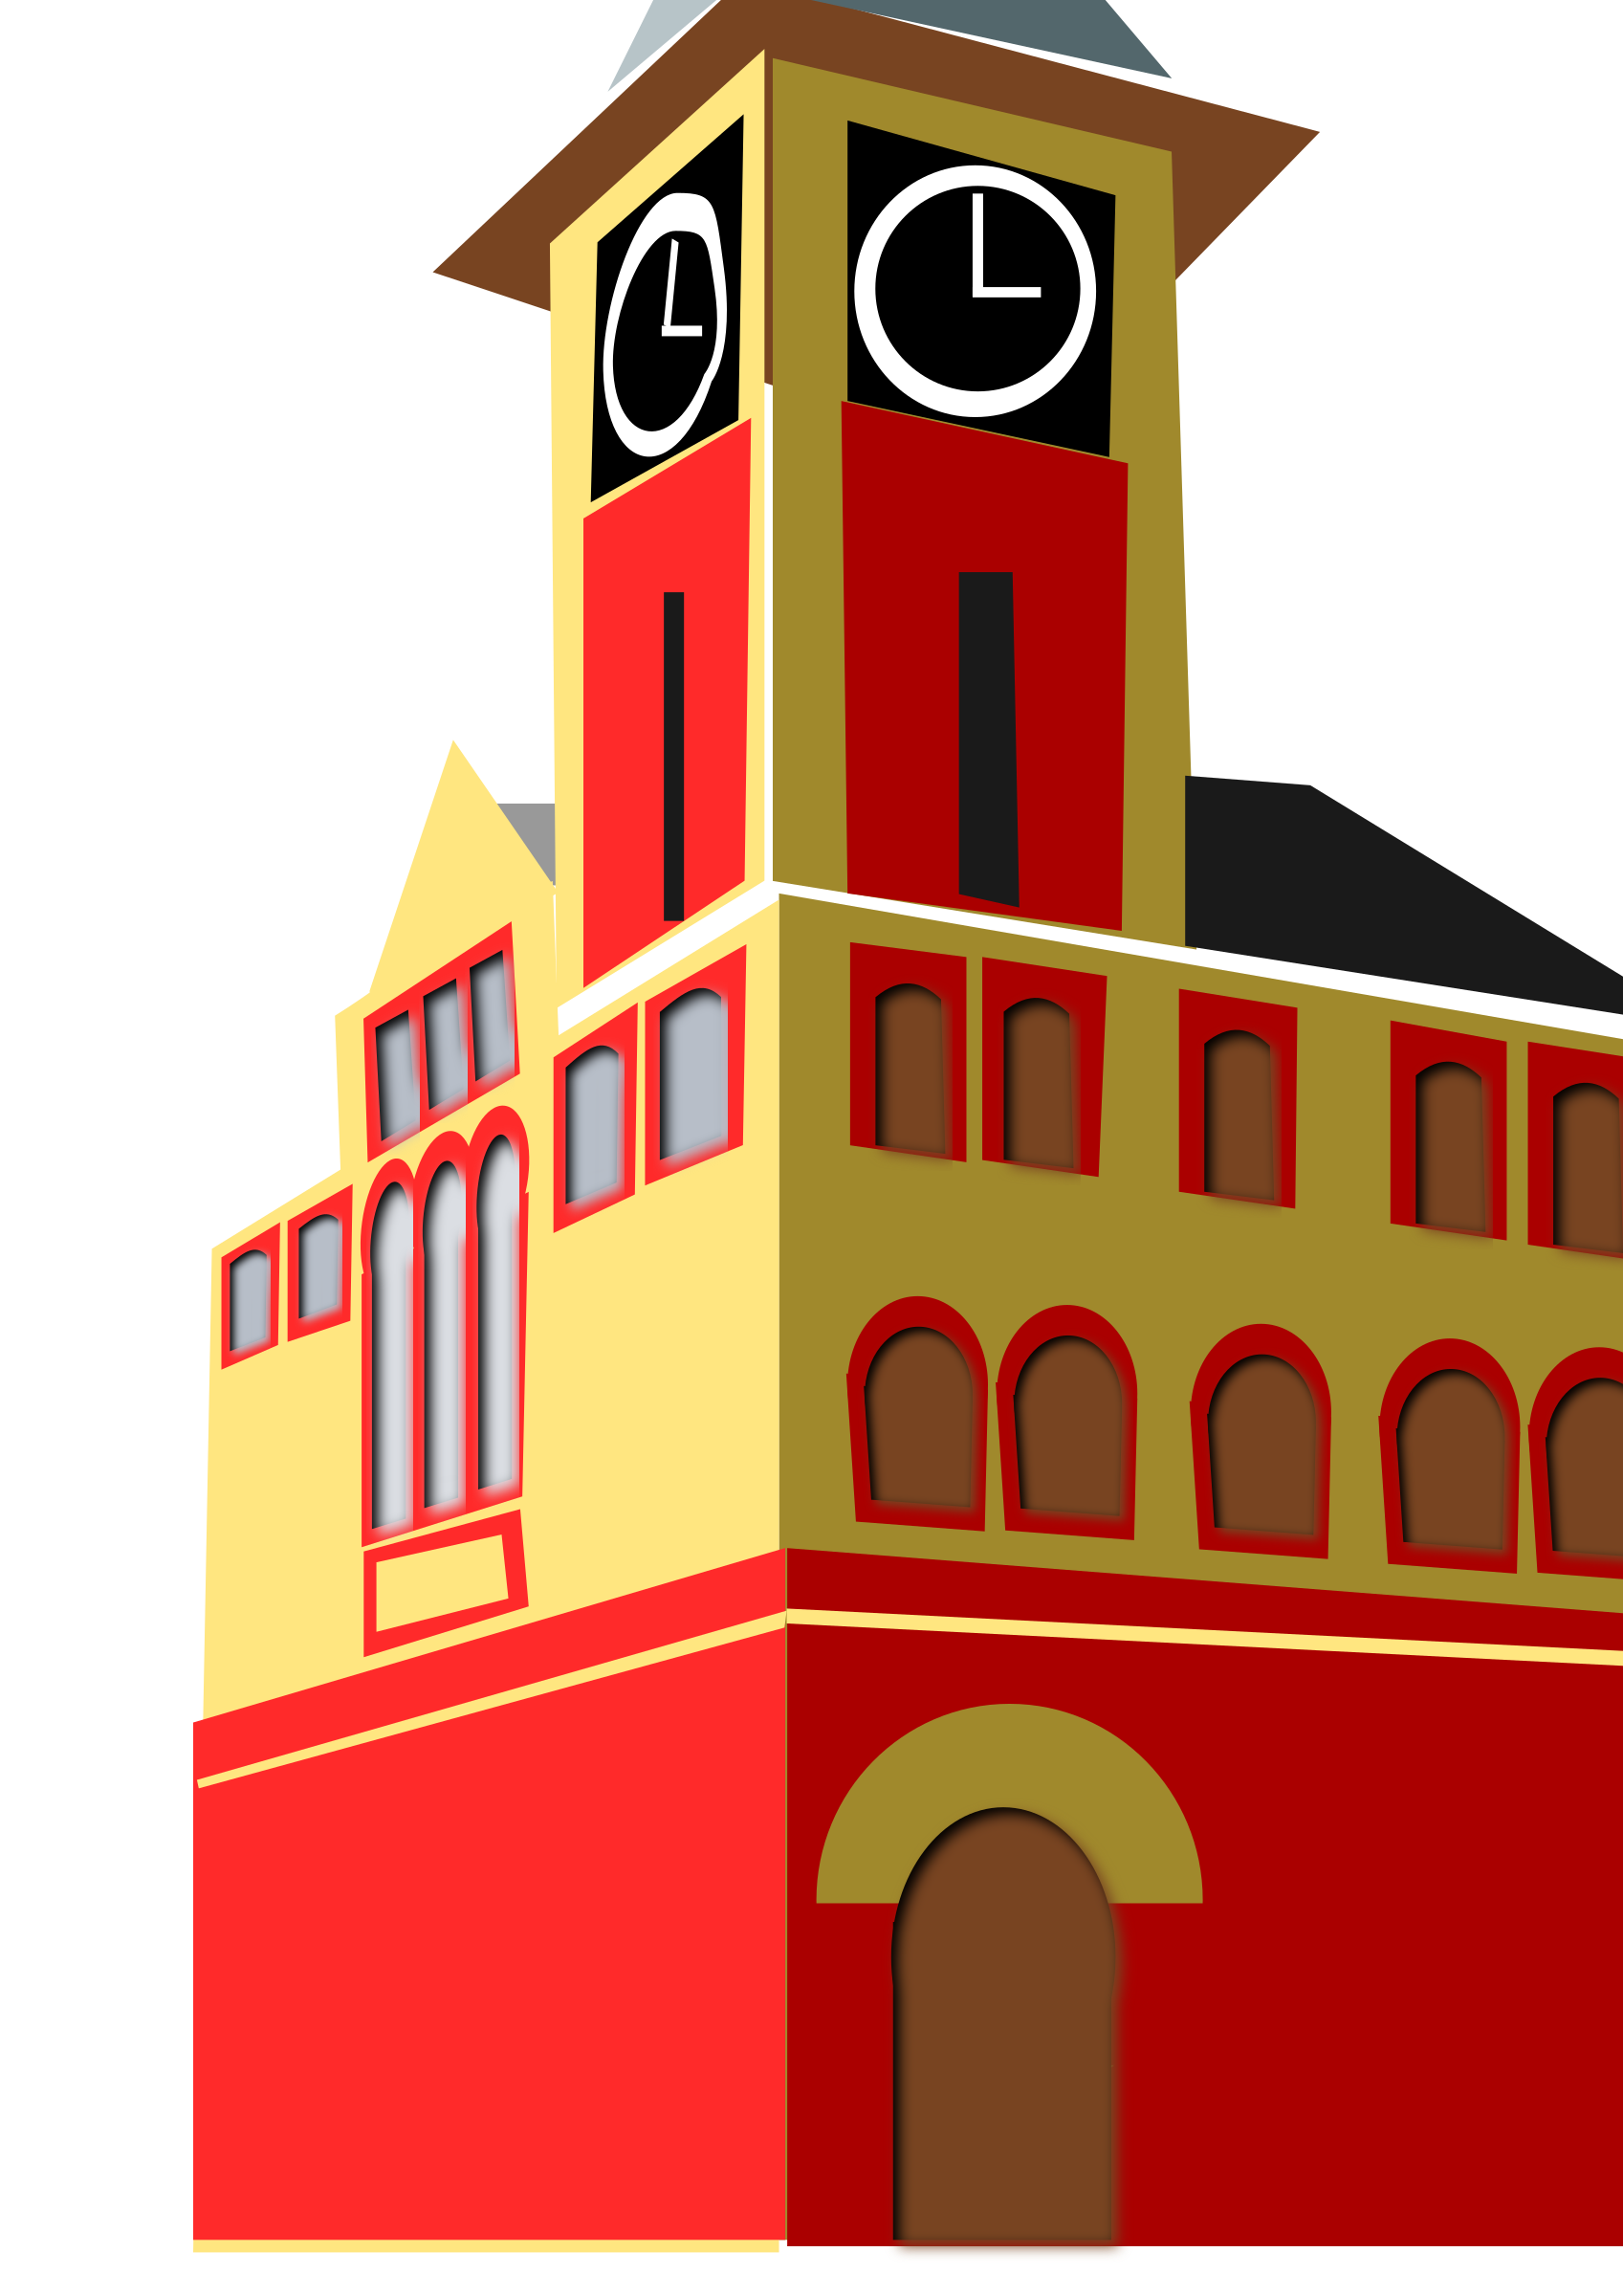 Home clipart hall. New bern town big